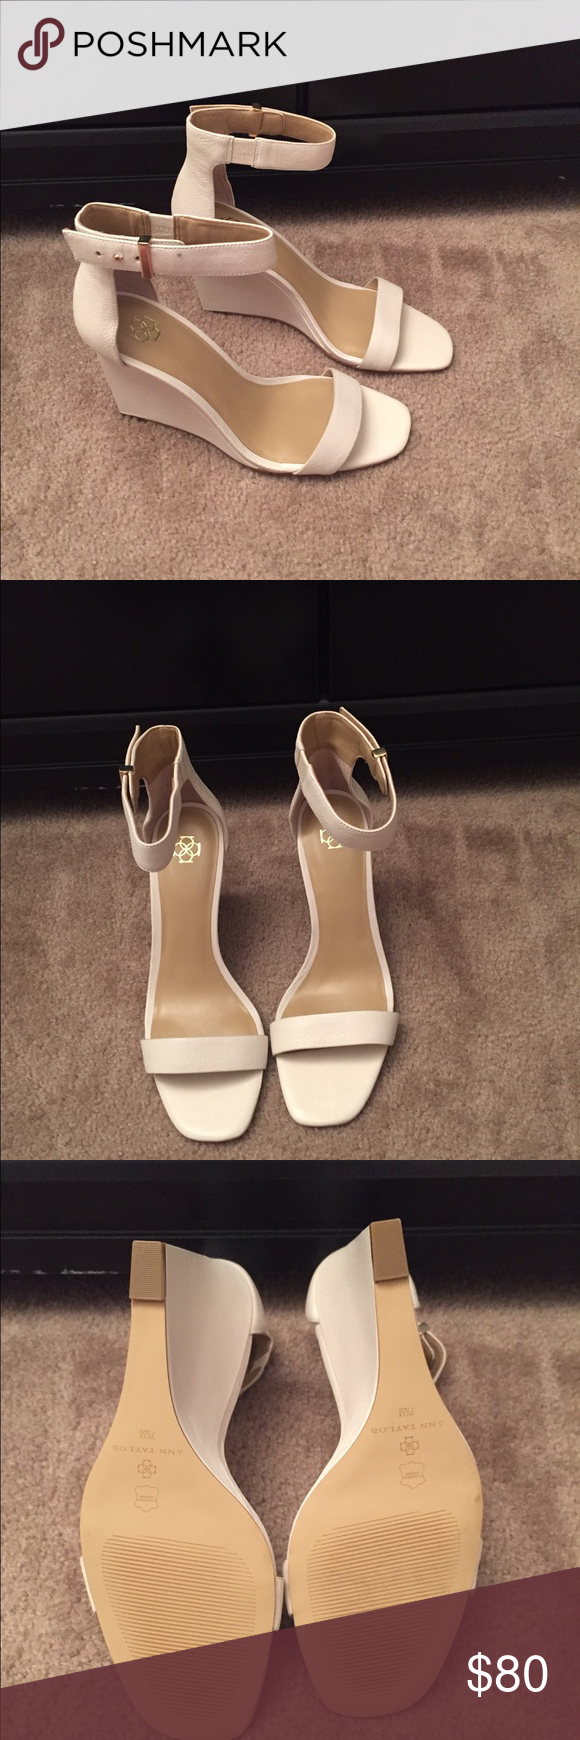 New in box Ann Taylor wedge Brand new, never worn Emmy wedge sandal Ann Taylor Shoes Wedges